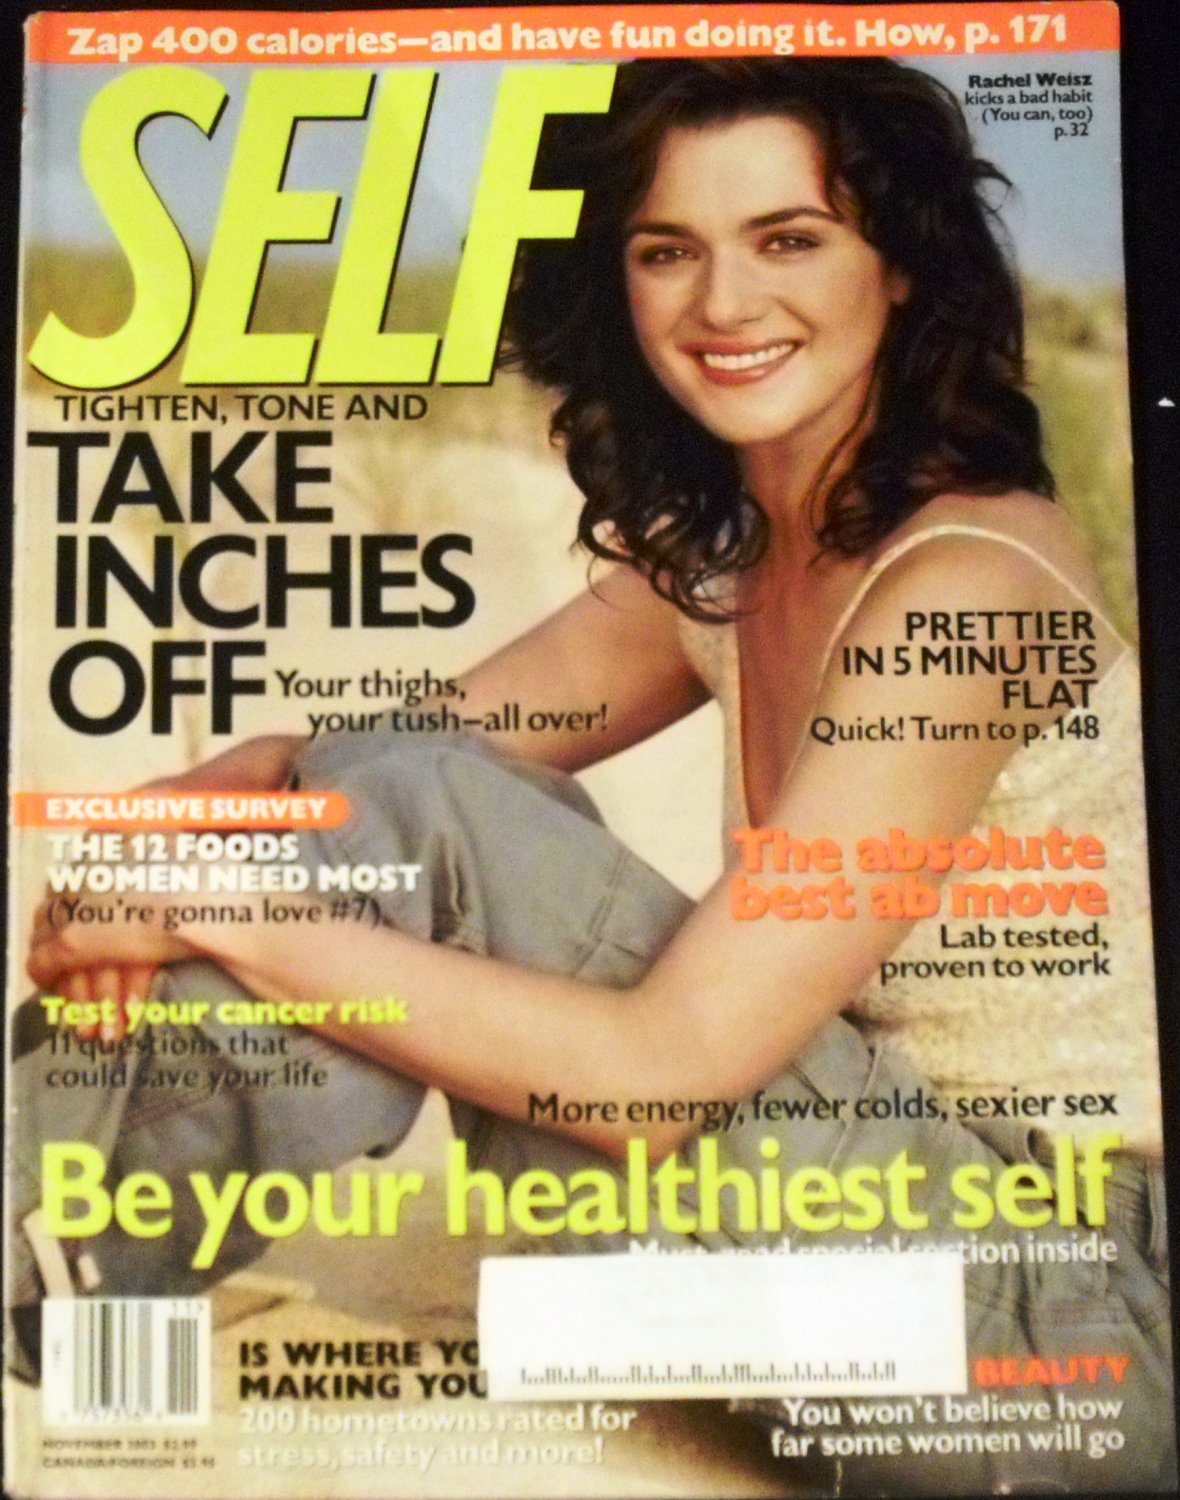 Self Magazine August 2005 (Rachel Weisz)